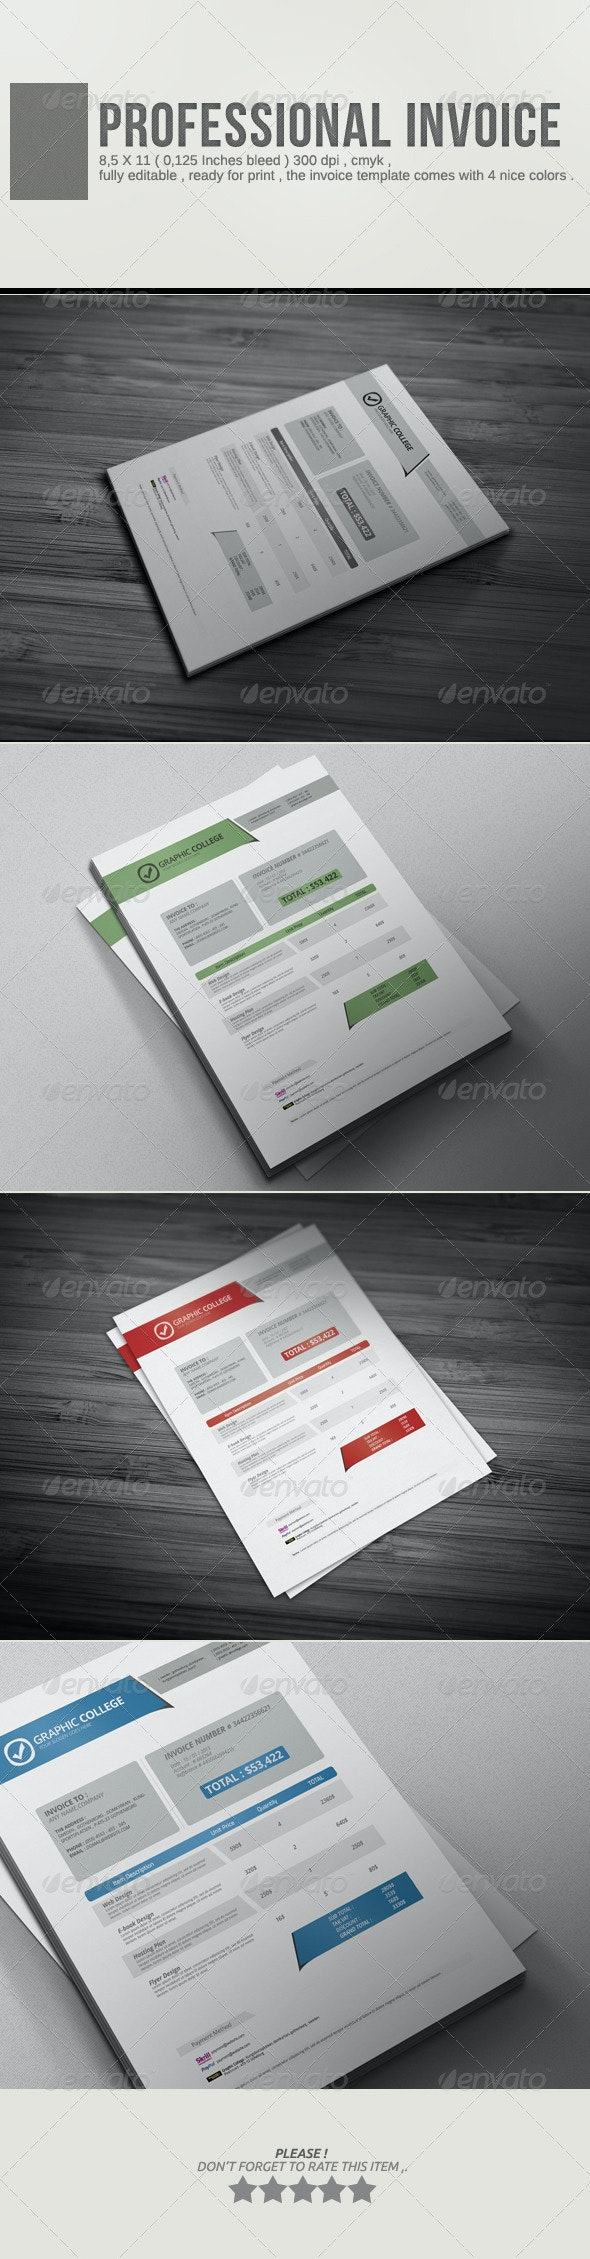 Professional Invoice Template Vol.2 - Proposals & Invoices Stationery